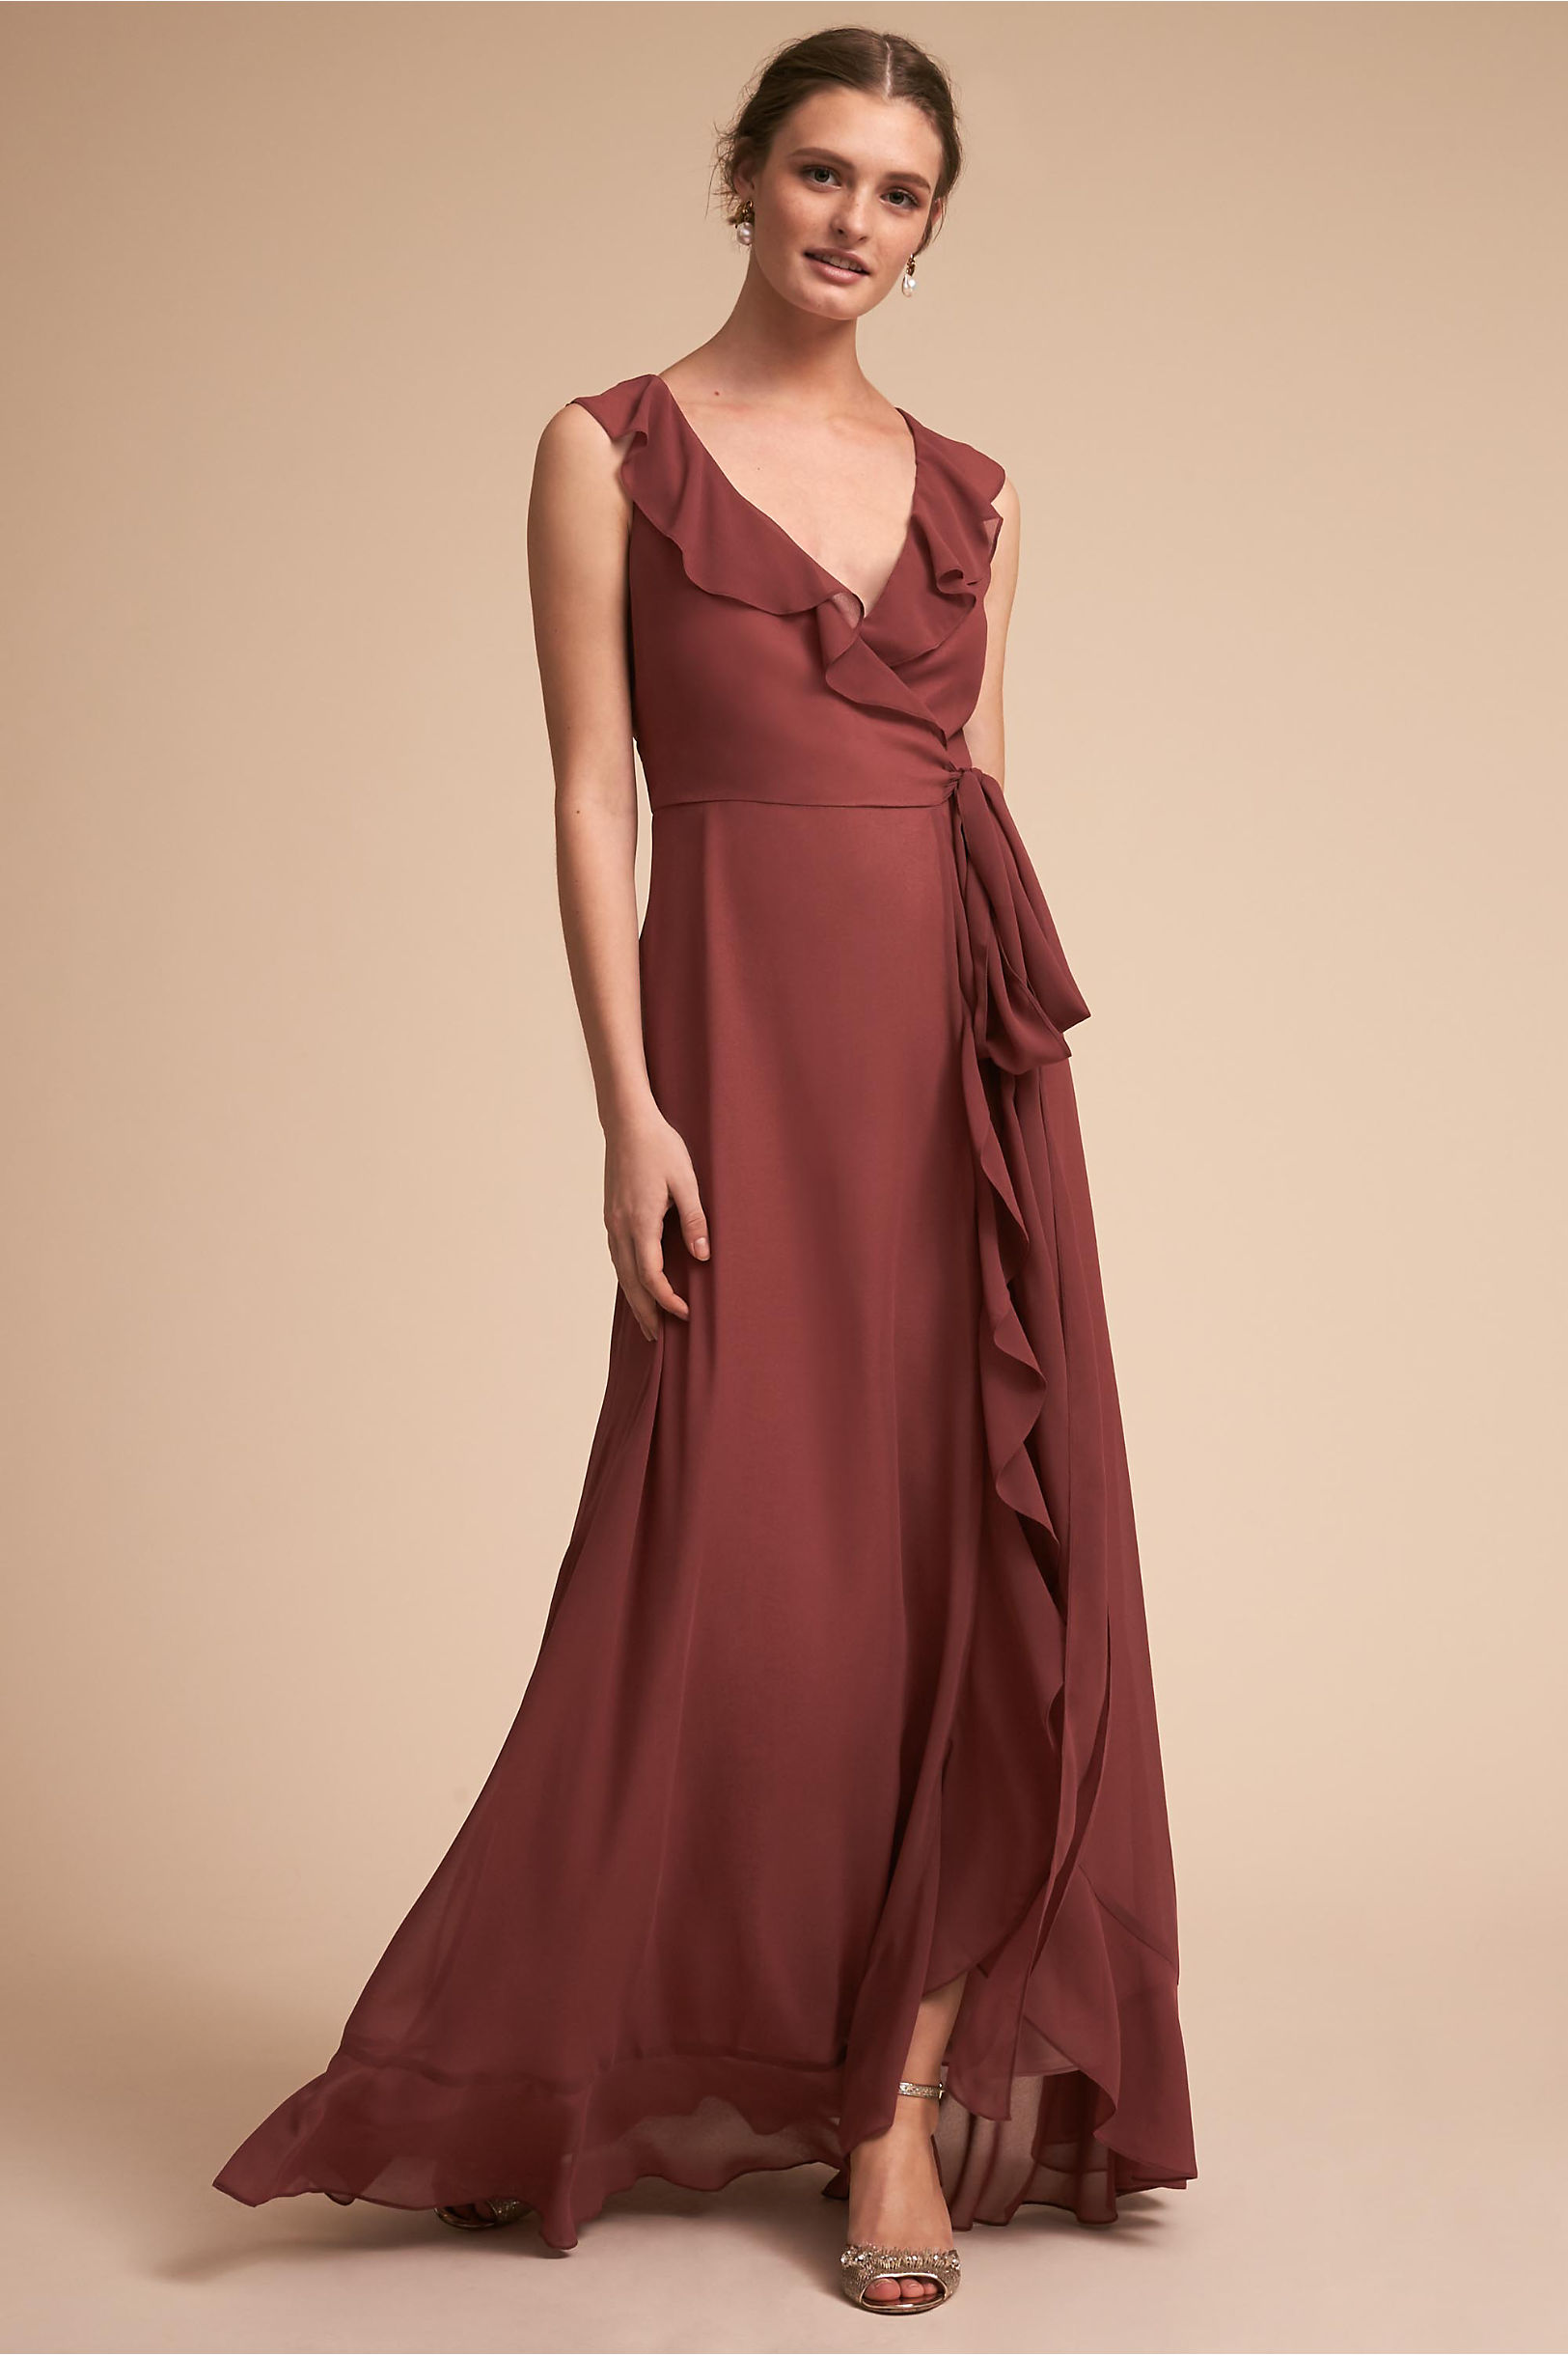 Burgundy red wine colored bridesmaid dresses bhldn julliard dress ombrellifo Image collections